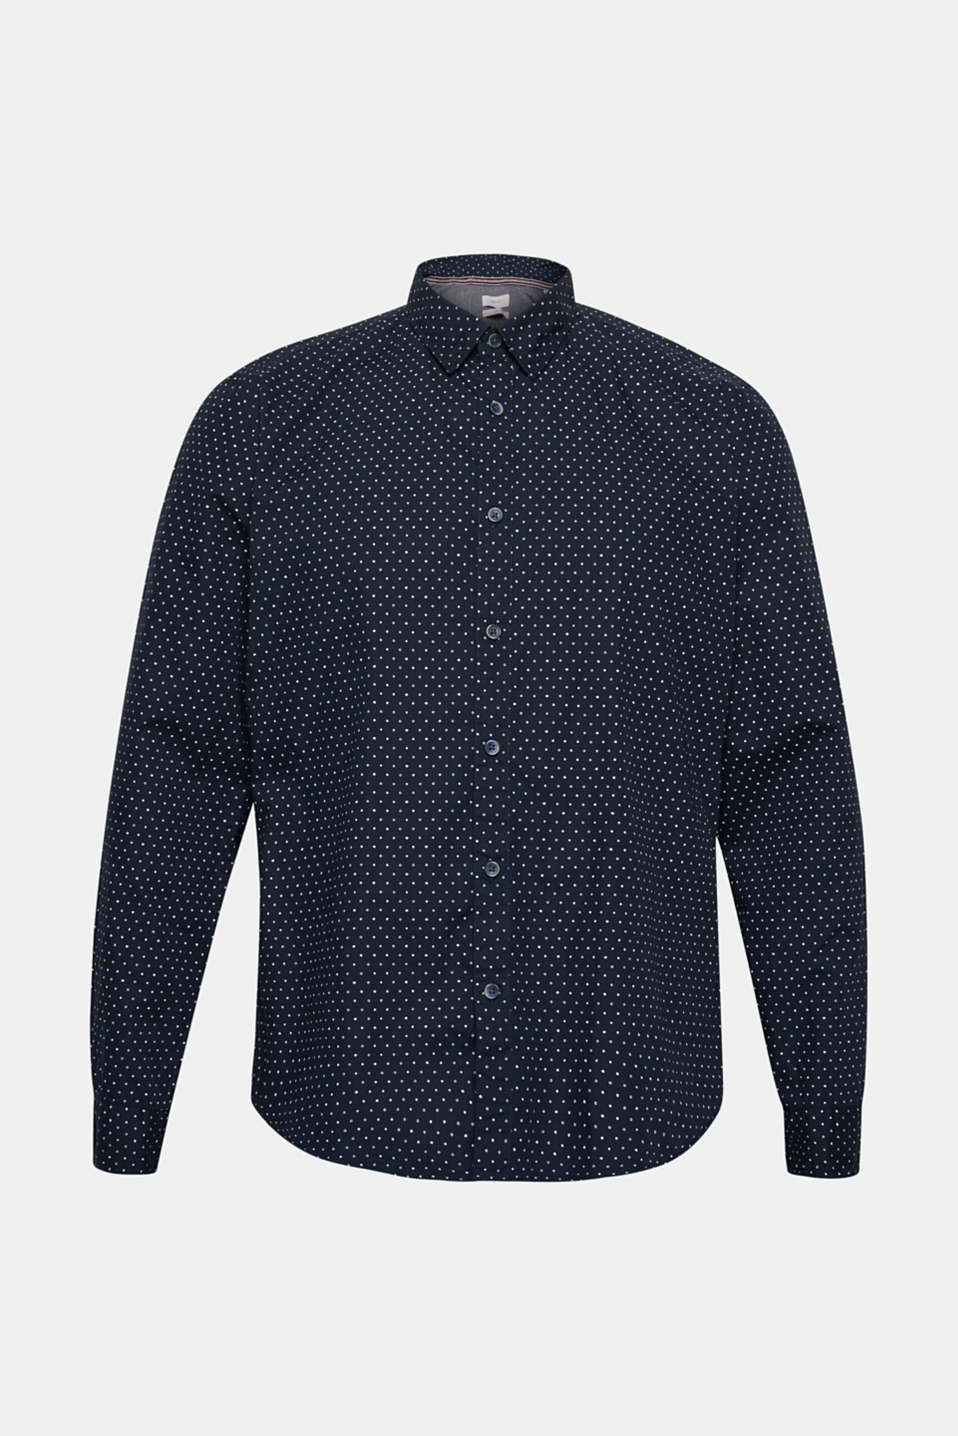 Shirts woven Slim fit, NAVY, detail image number 7